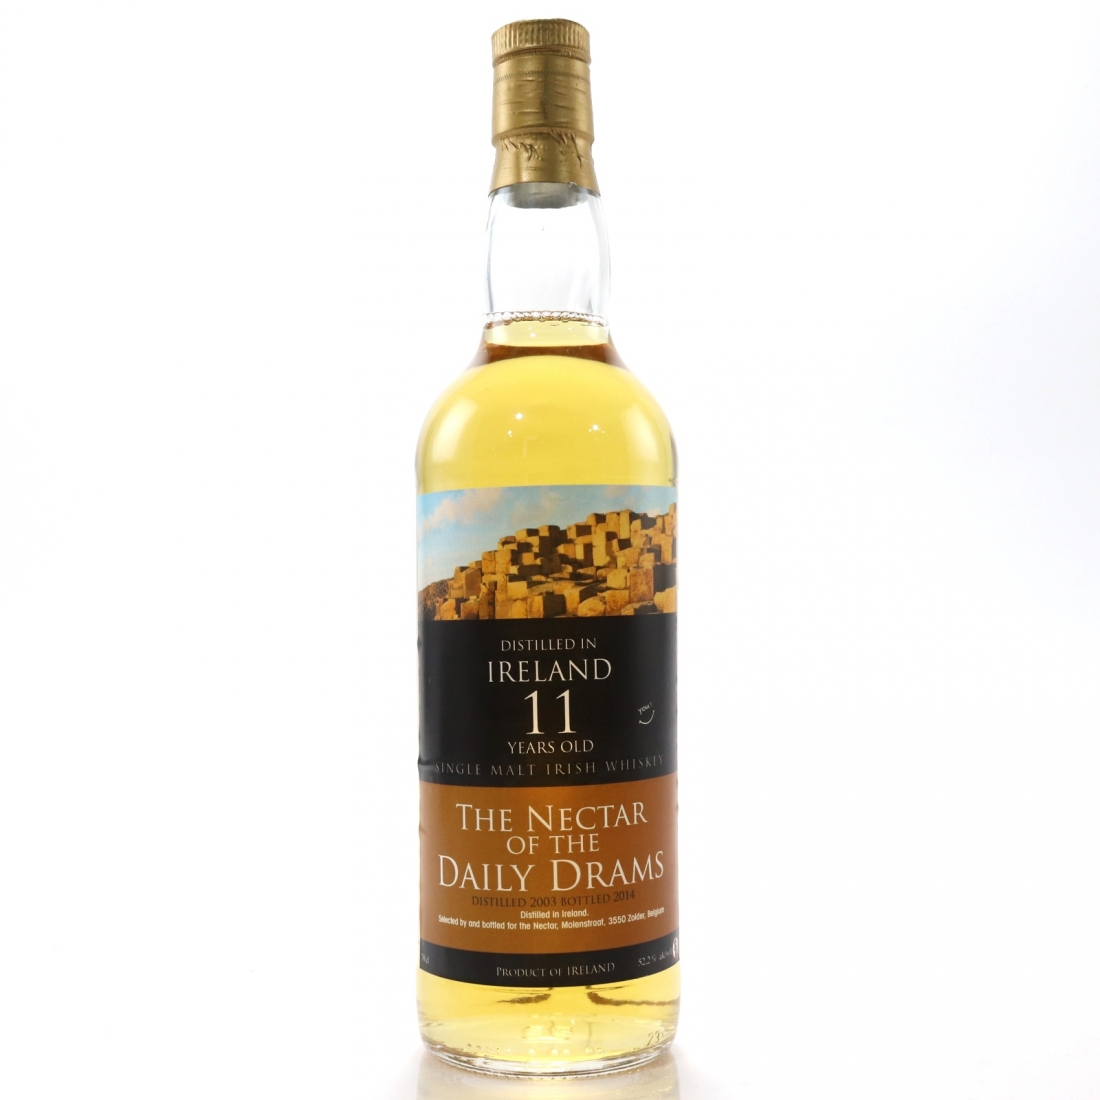 Irish Single Malt 2003 The Nectar of the Daily Drams 11 Year Old